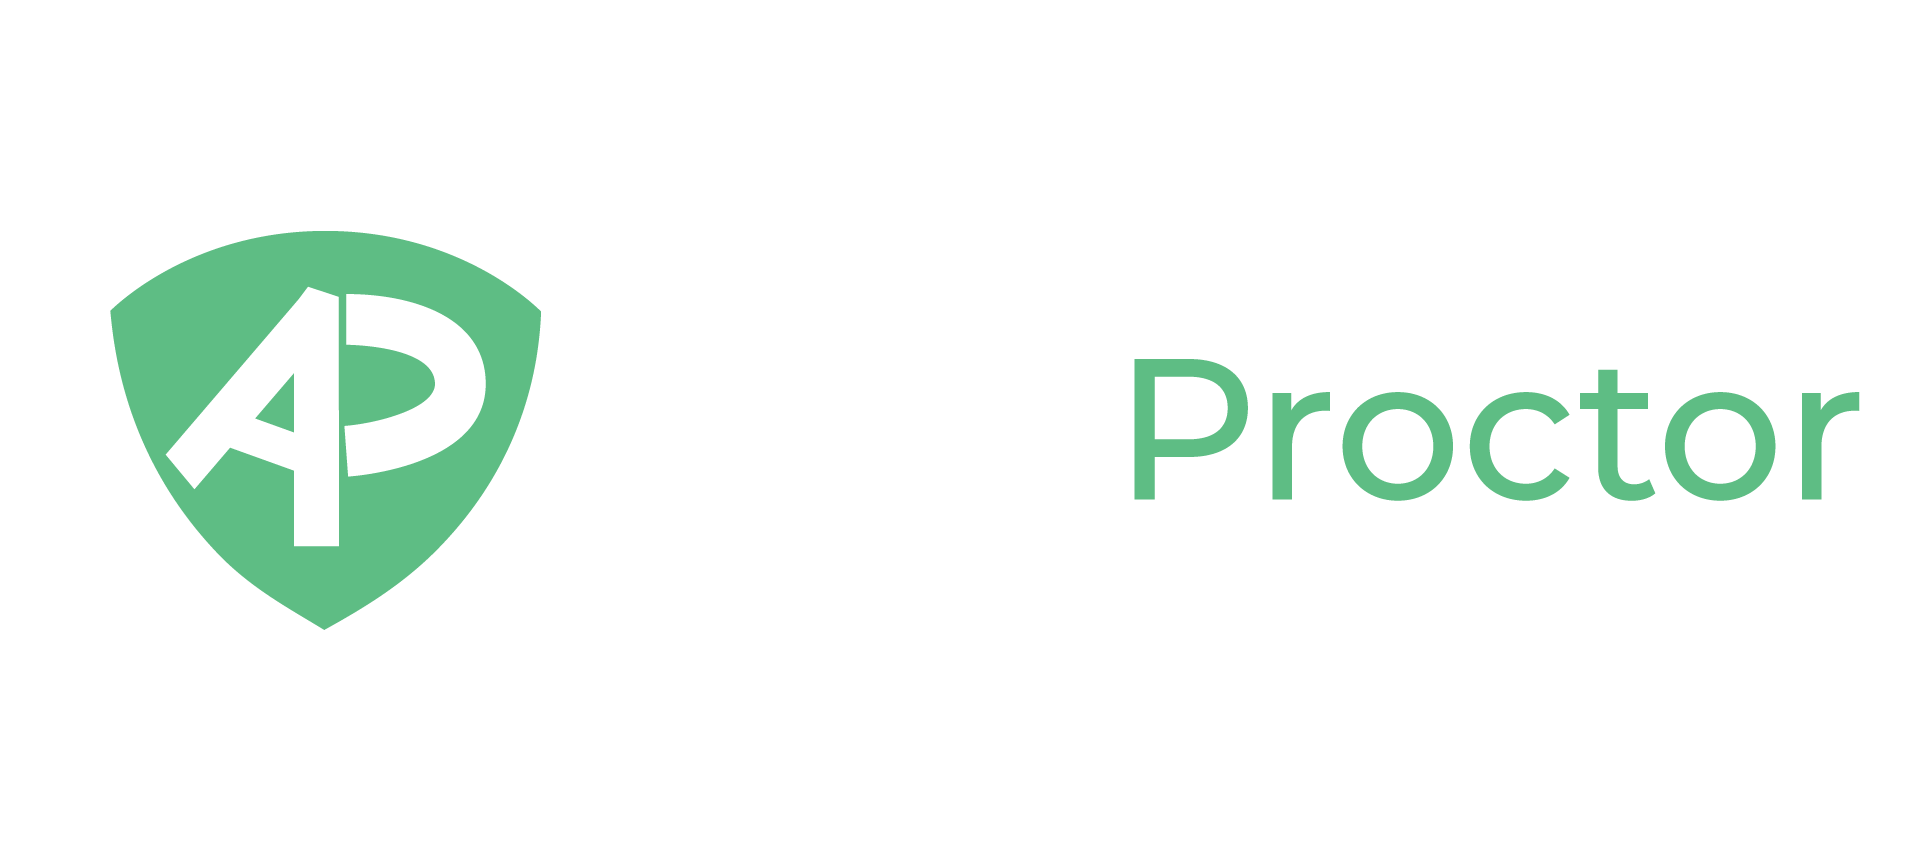 AutoProctor Logo shows the word AutoProctor and has a Shield symbol with AP written inside it